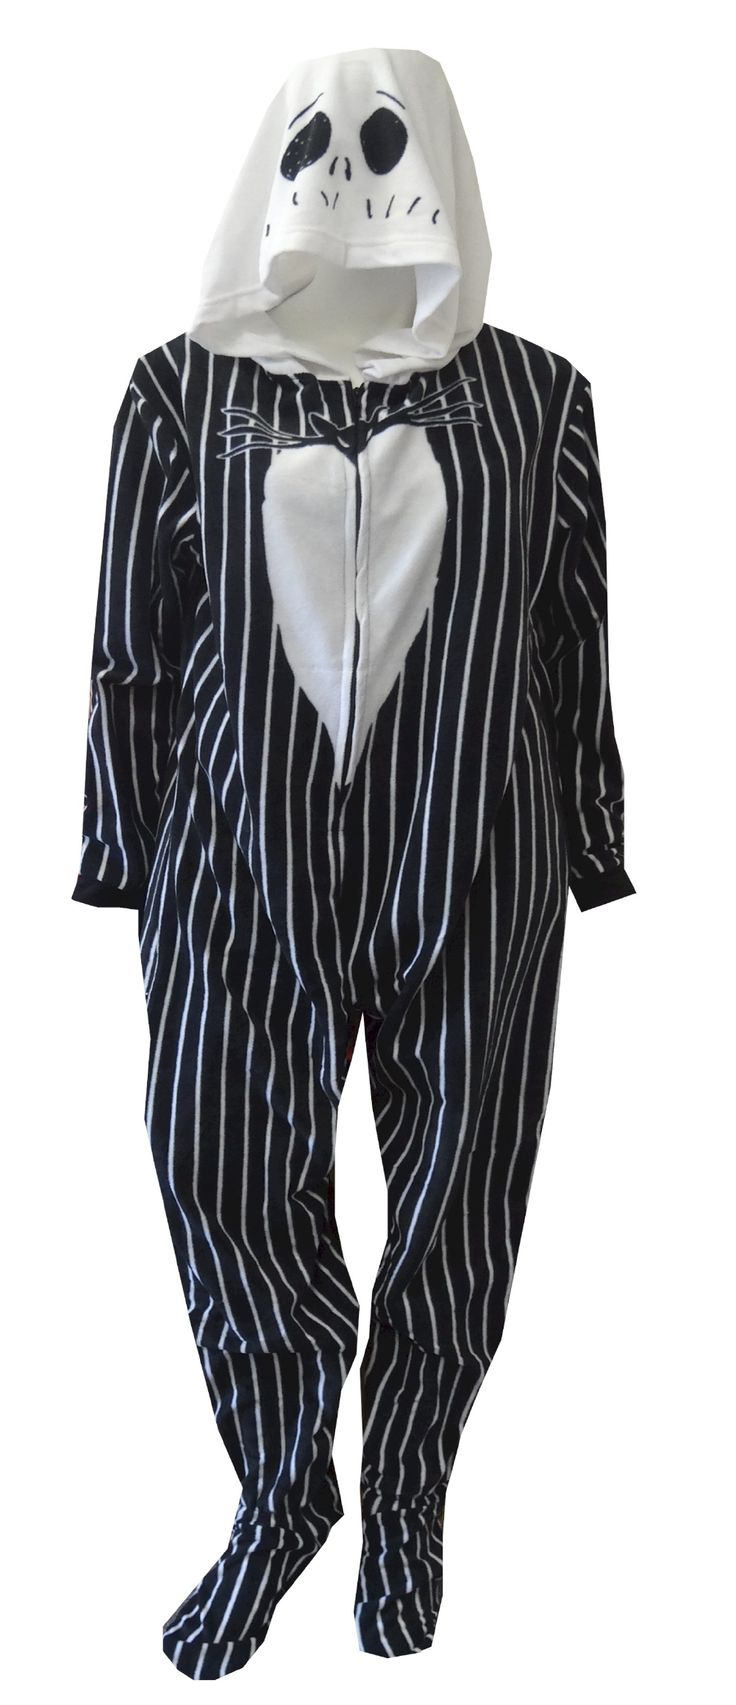 Nightmare Before Christmas Jack Skellington Unisex Footie Pajama Now you can look just like Jack Skellington! These unisex paja...